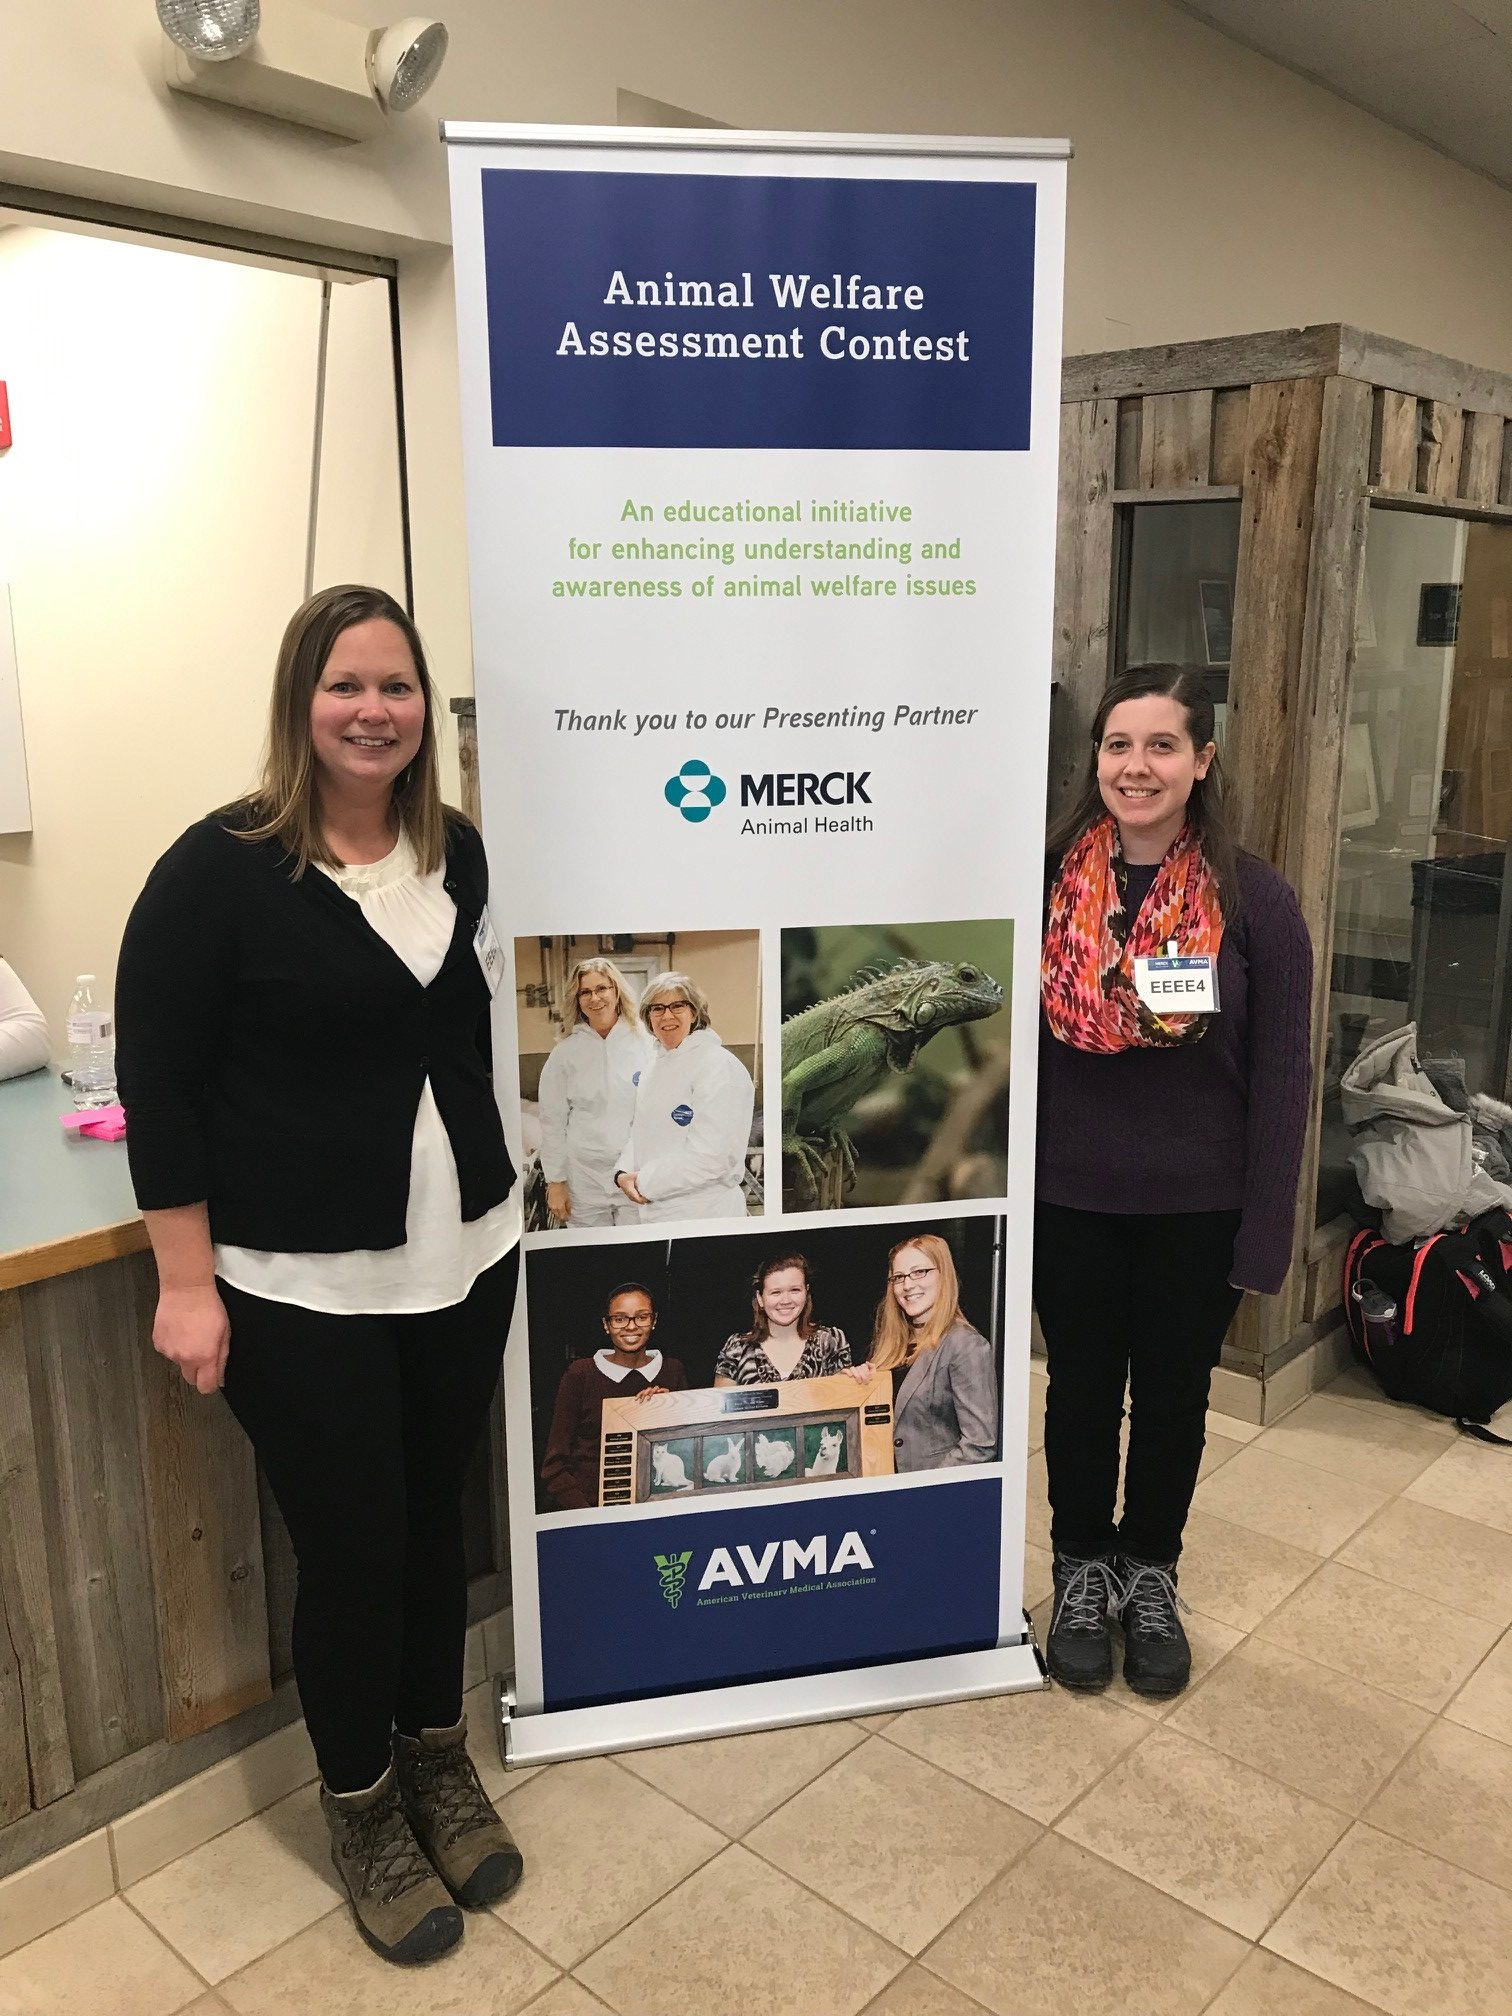 MAPP students, Jessica Baldeck and Alicia Pensarosa, went to AVMA's Animal Welfare Assessment Contest held at Colorodo State University (CSU)